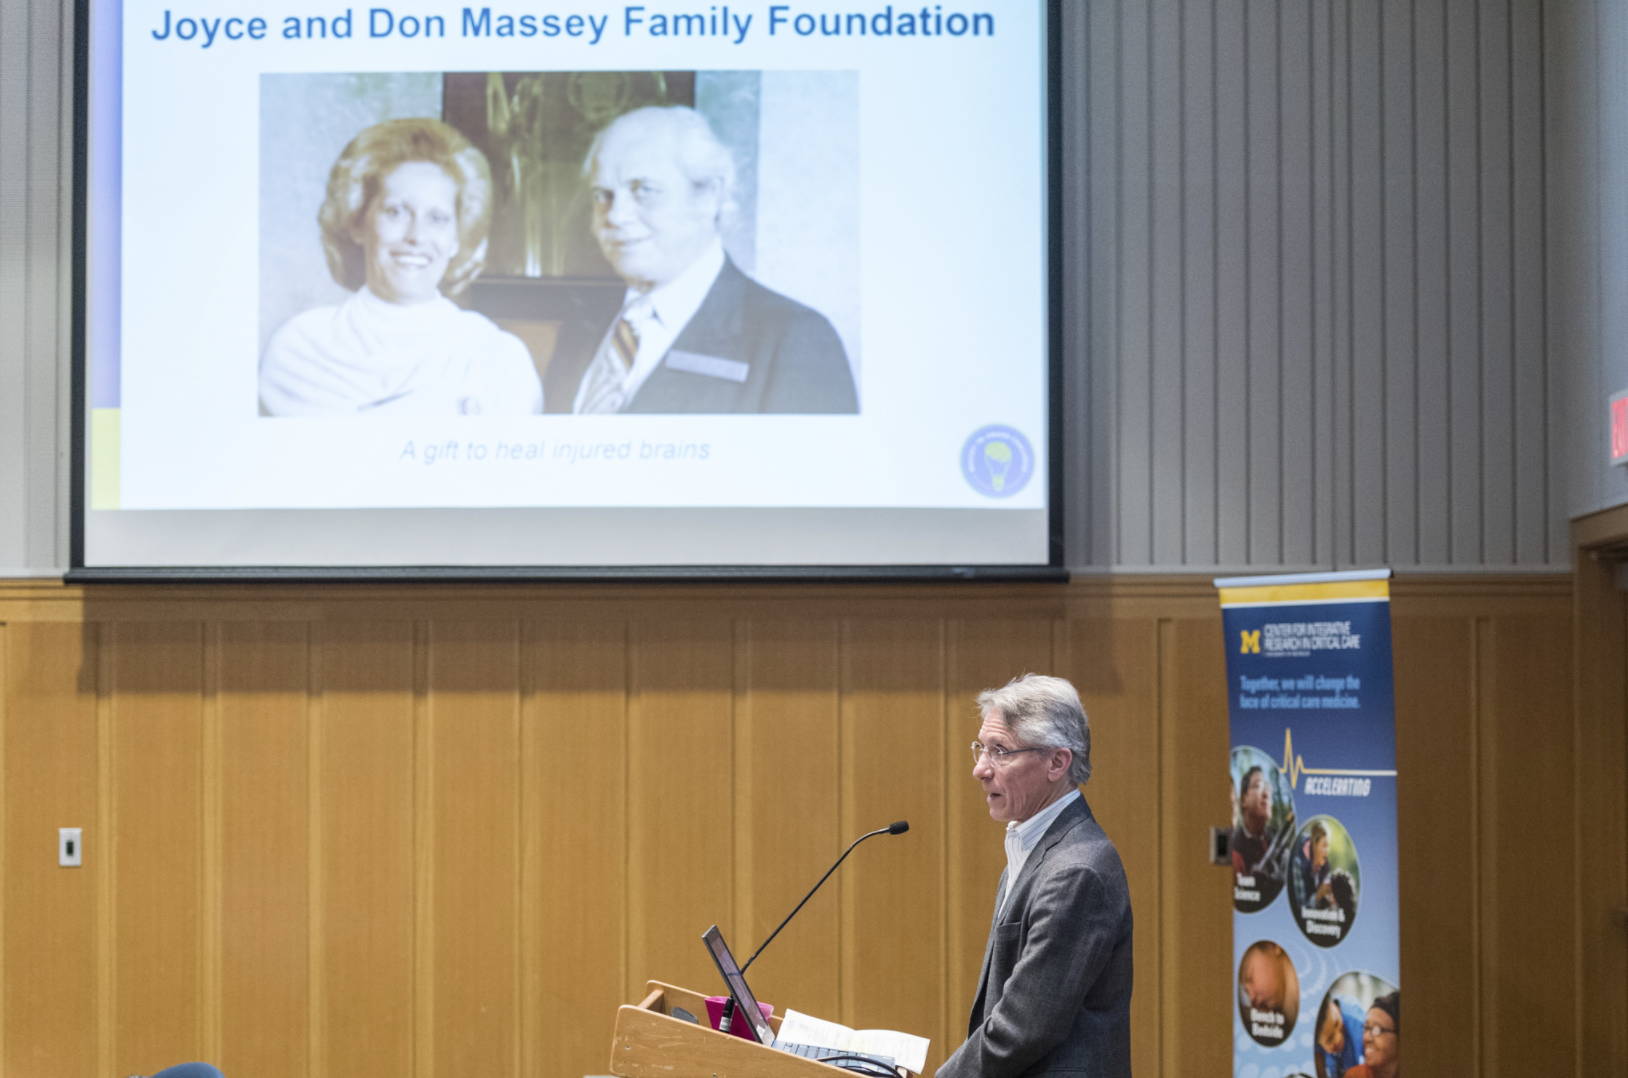 Dr. William Barsan presents the Massey TBI Grand Challenge mission, which is made possible thanks to a generous donation from the Massey family.